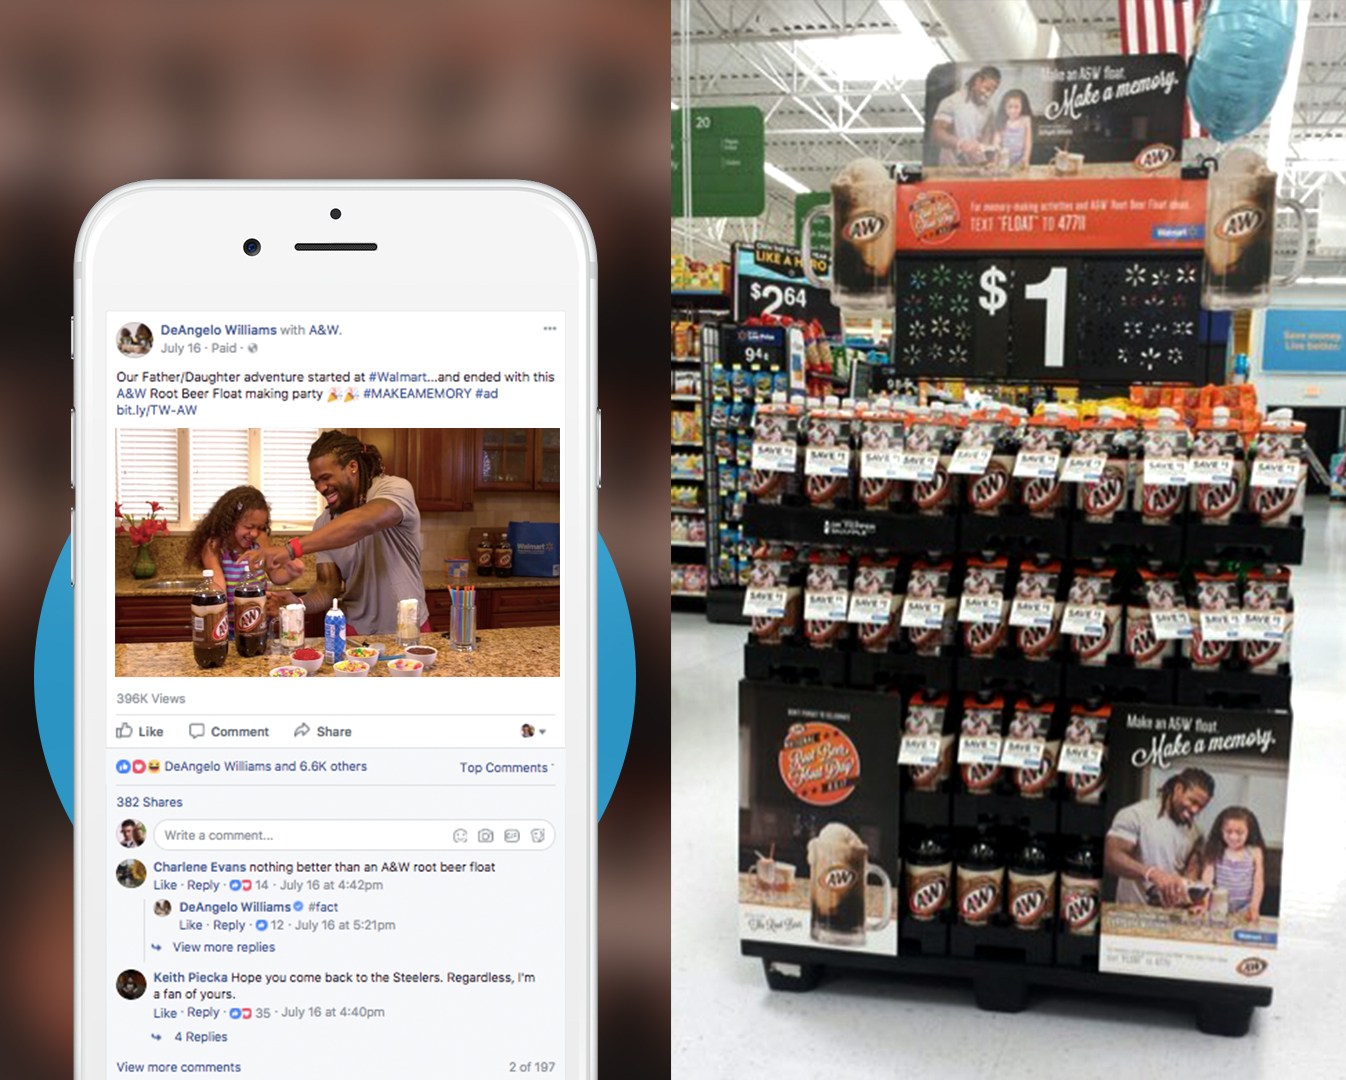 5. Distribution - Following the Shopper's path to purchase, WHOSAY optimizes the distribution of content with targeted social distribution. Delivering a cohesive, omnichannel message, WHOSAY content then follows the Shopper journey to online at retailer.com, then in-store on signage, display, in-store TV and even live retail events.